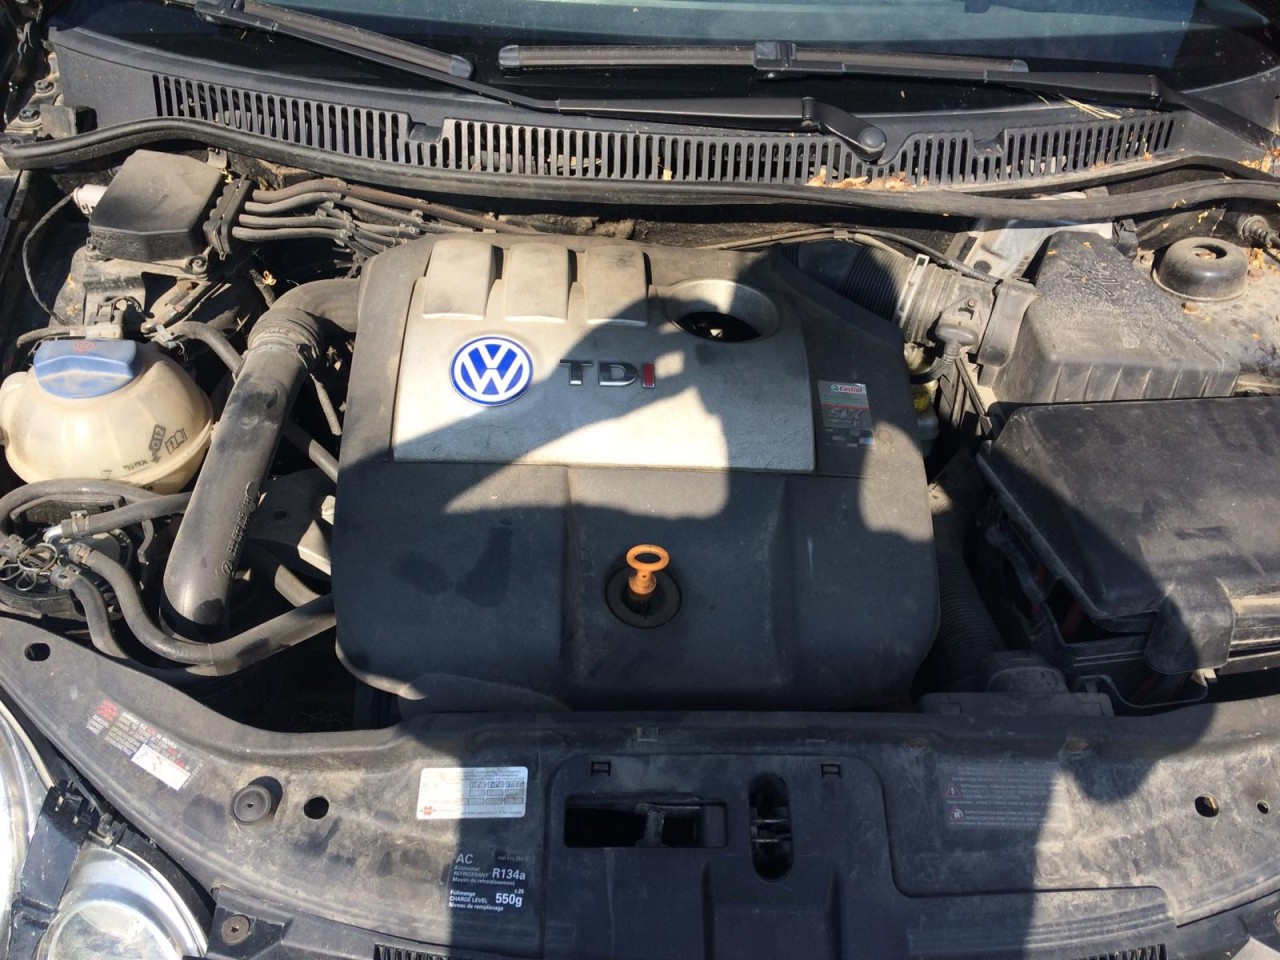 VW Polo 1.3 tdi 2003